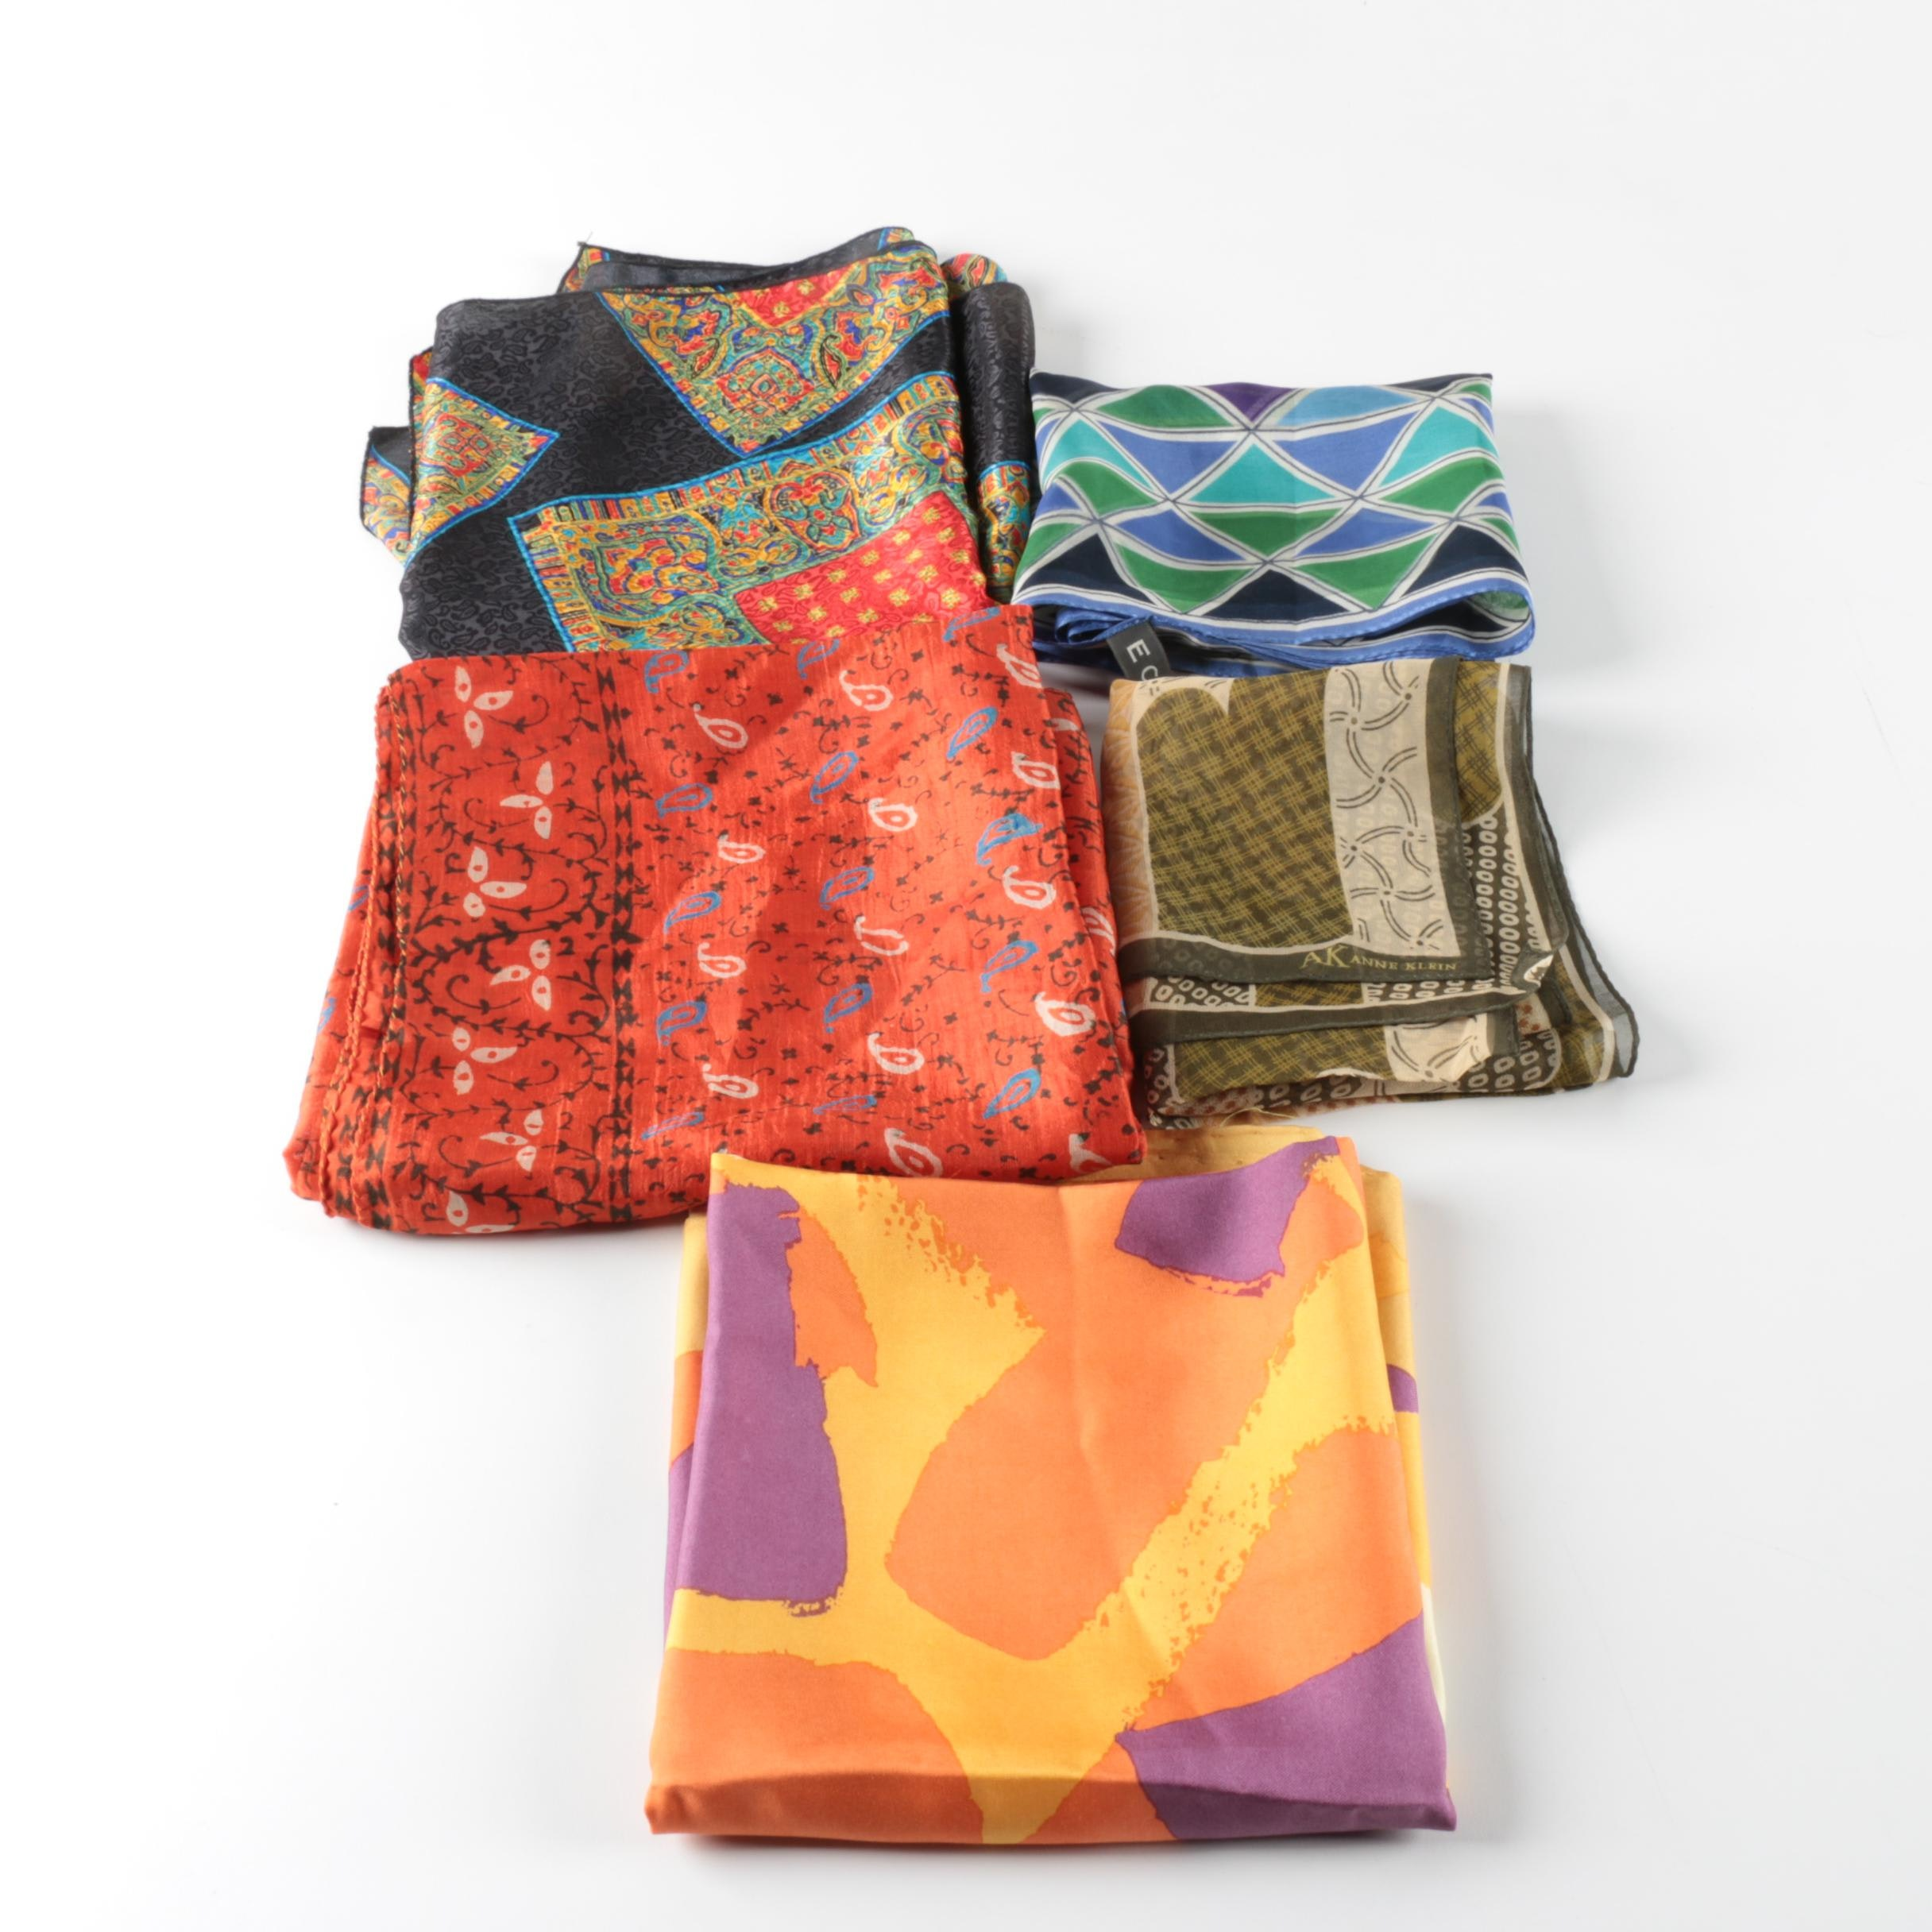 Designer Scarves, Including Echo and Royal Academy of Arts